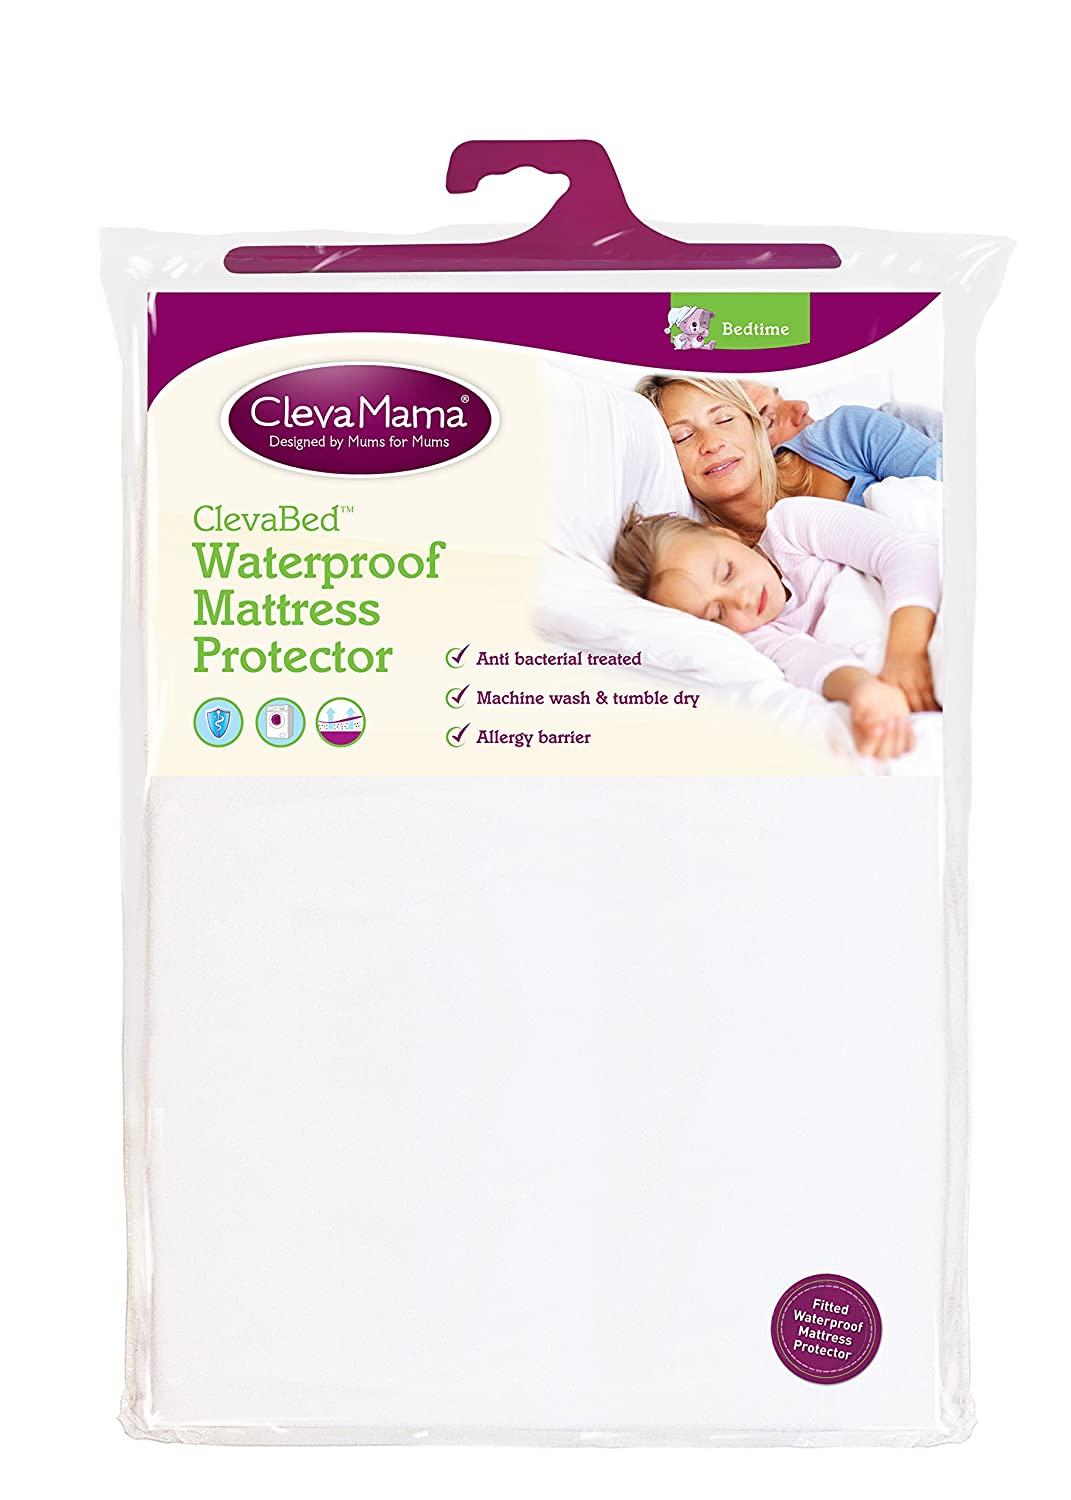 Clevamama Waterproof Fitted Brushed Cotton Mattress Protector Cot Bed, 70x140 cm 7215